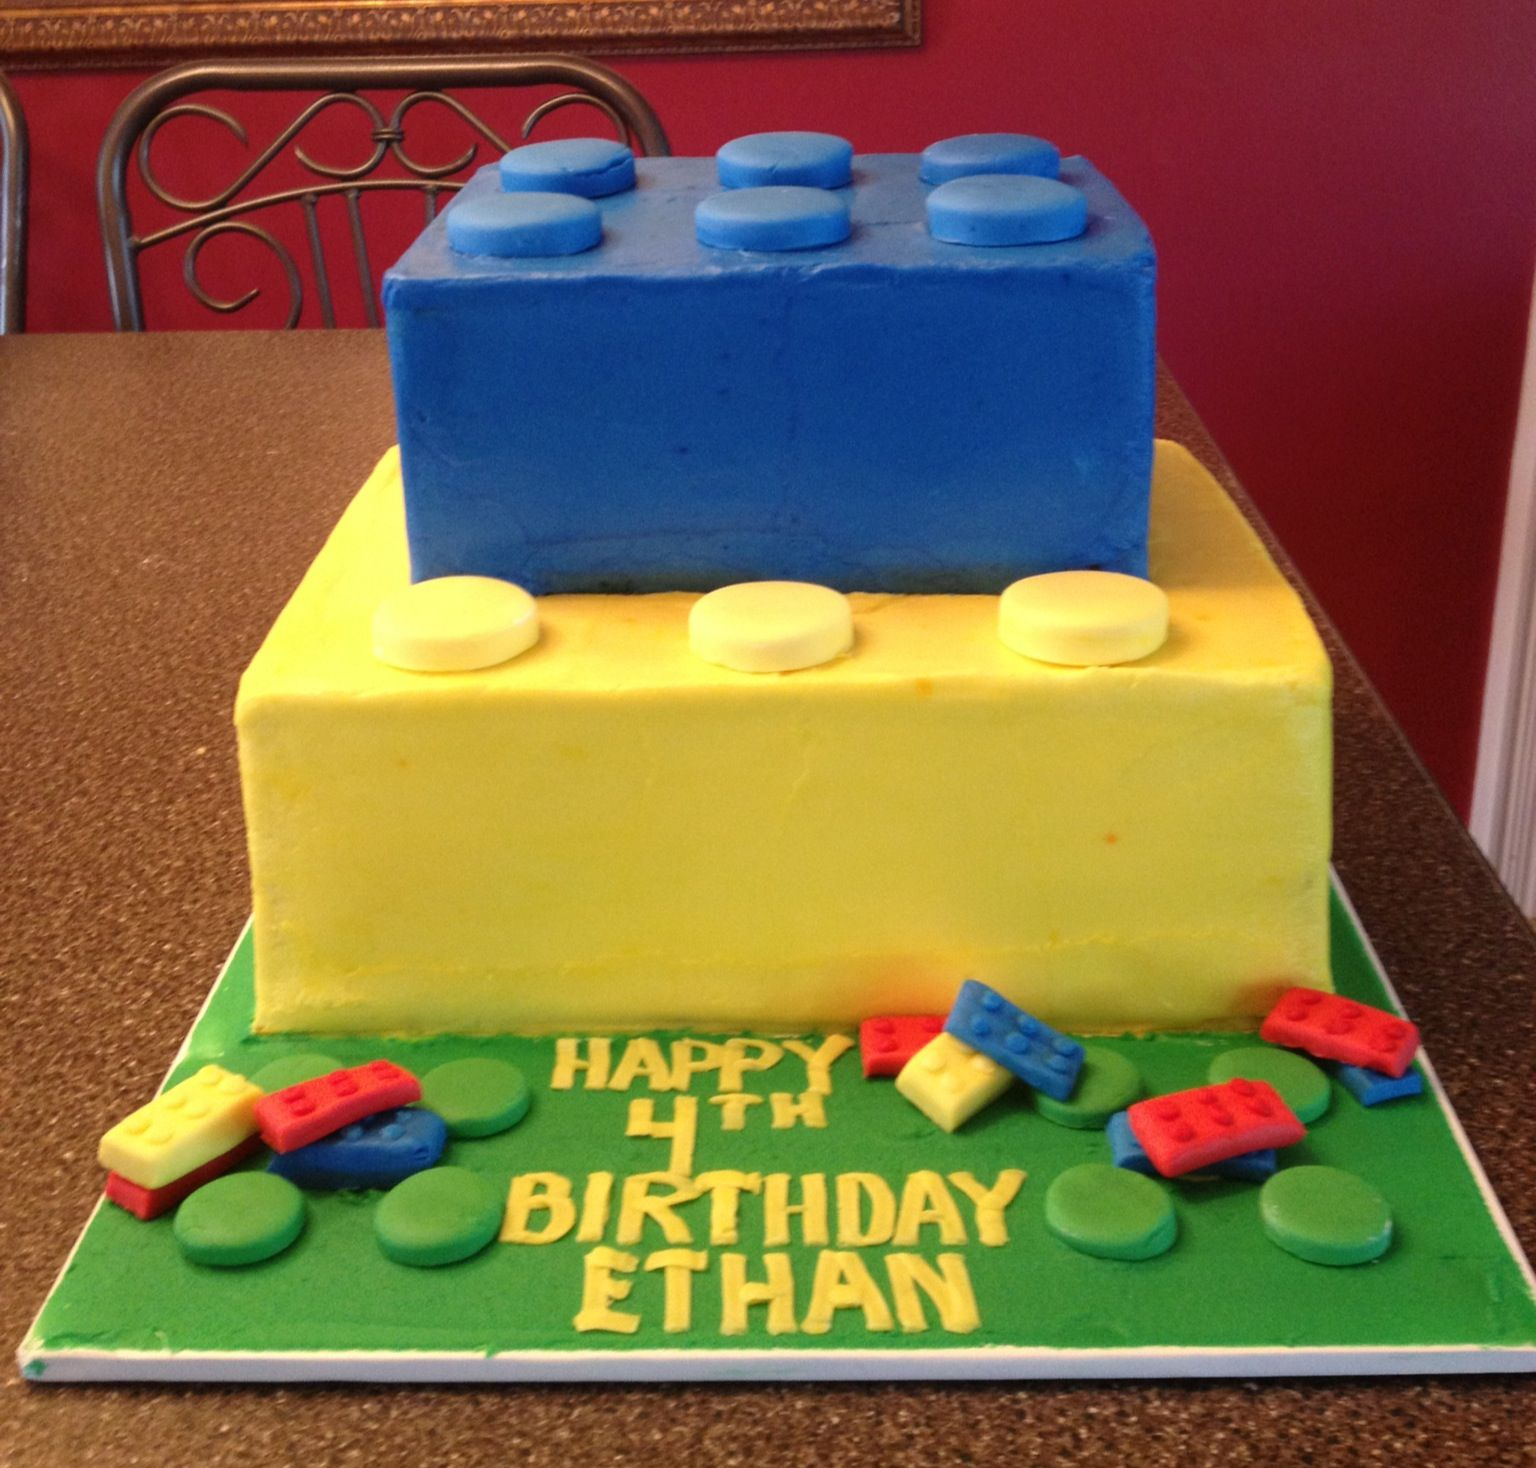 Lego Cake I used a 12x18 sheet cake cut in half stacked for the